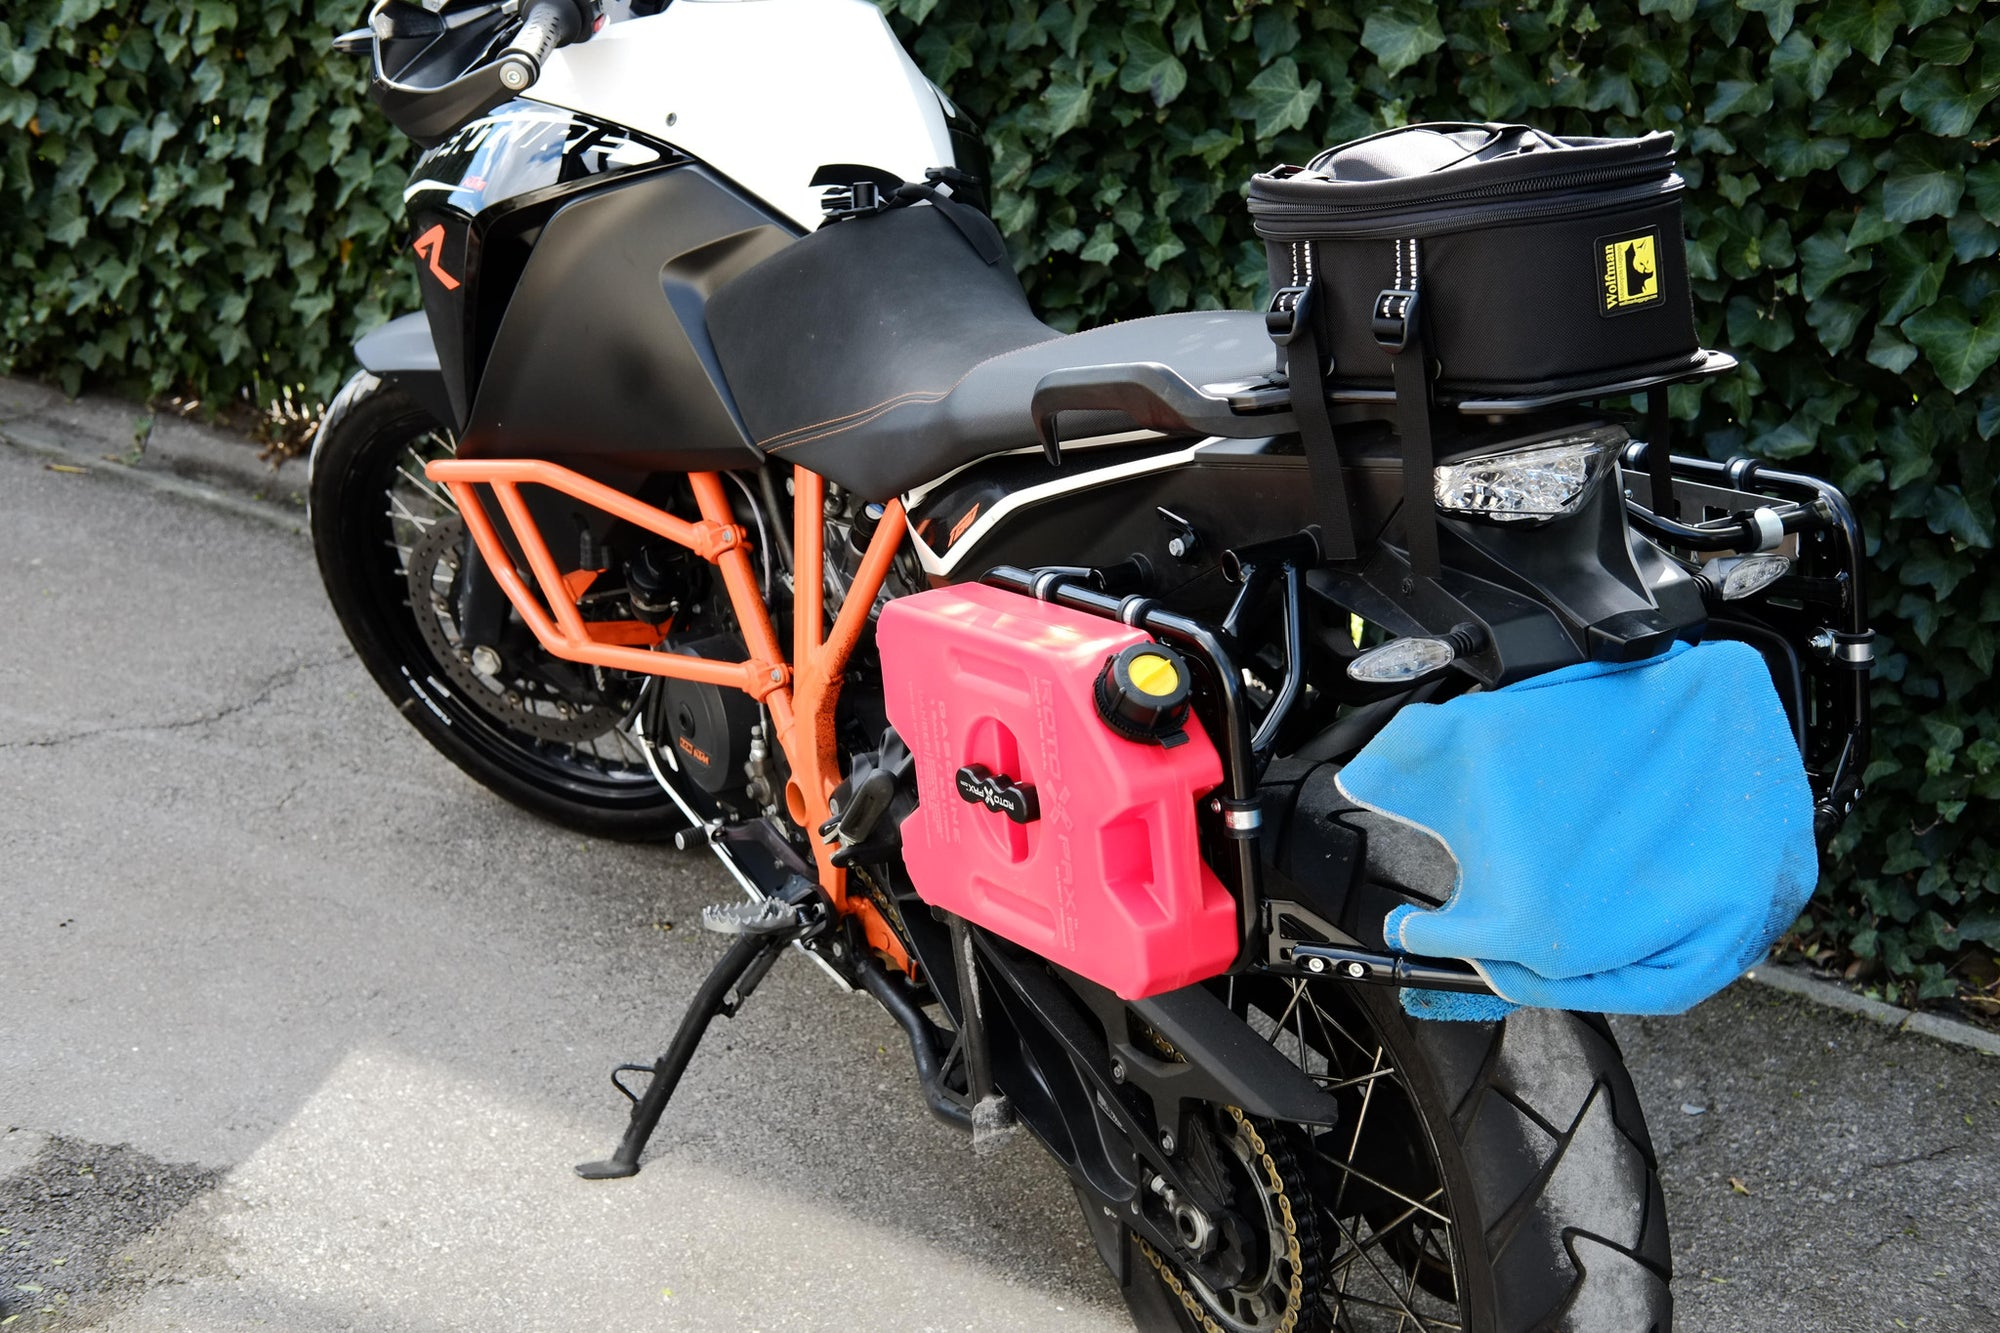 Perun moto Add-on plates on KTM 1190 Adventure R